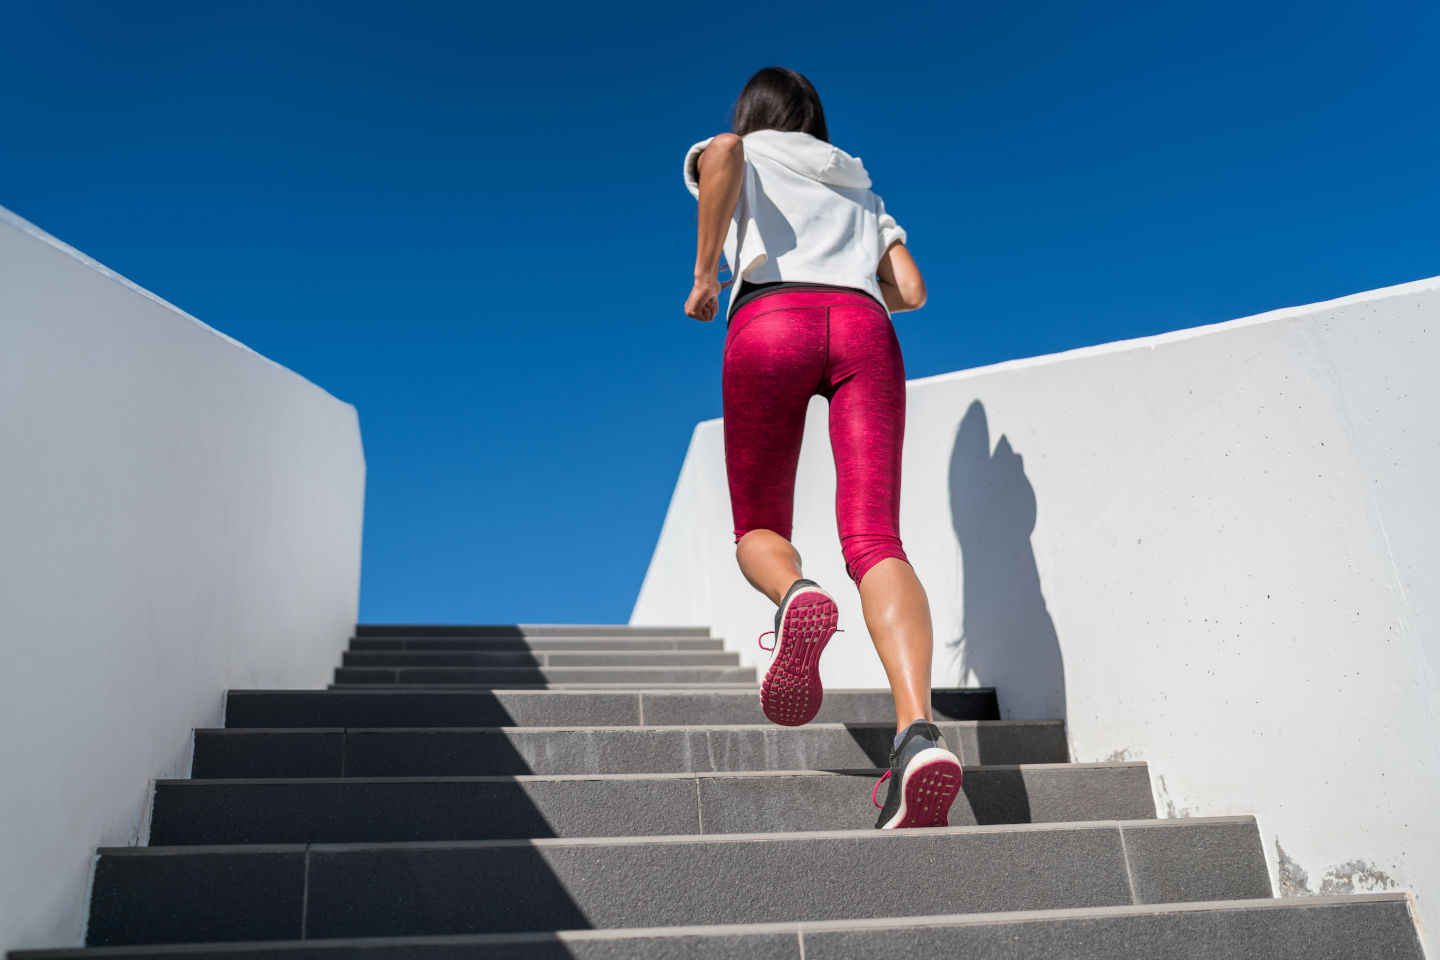 Stairs climbing running woman doing run up steps on staircase. Female runner athlete going up stairs in urban city doing cardio sport workout run outside during summer. Activewear leggings and shoes.